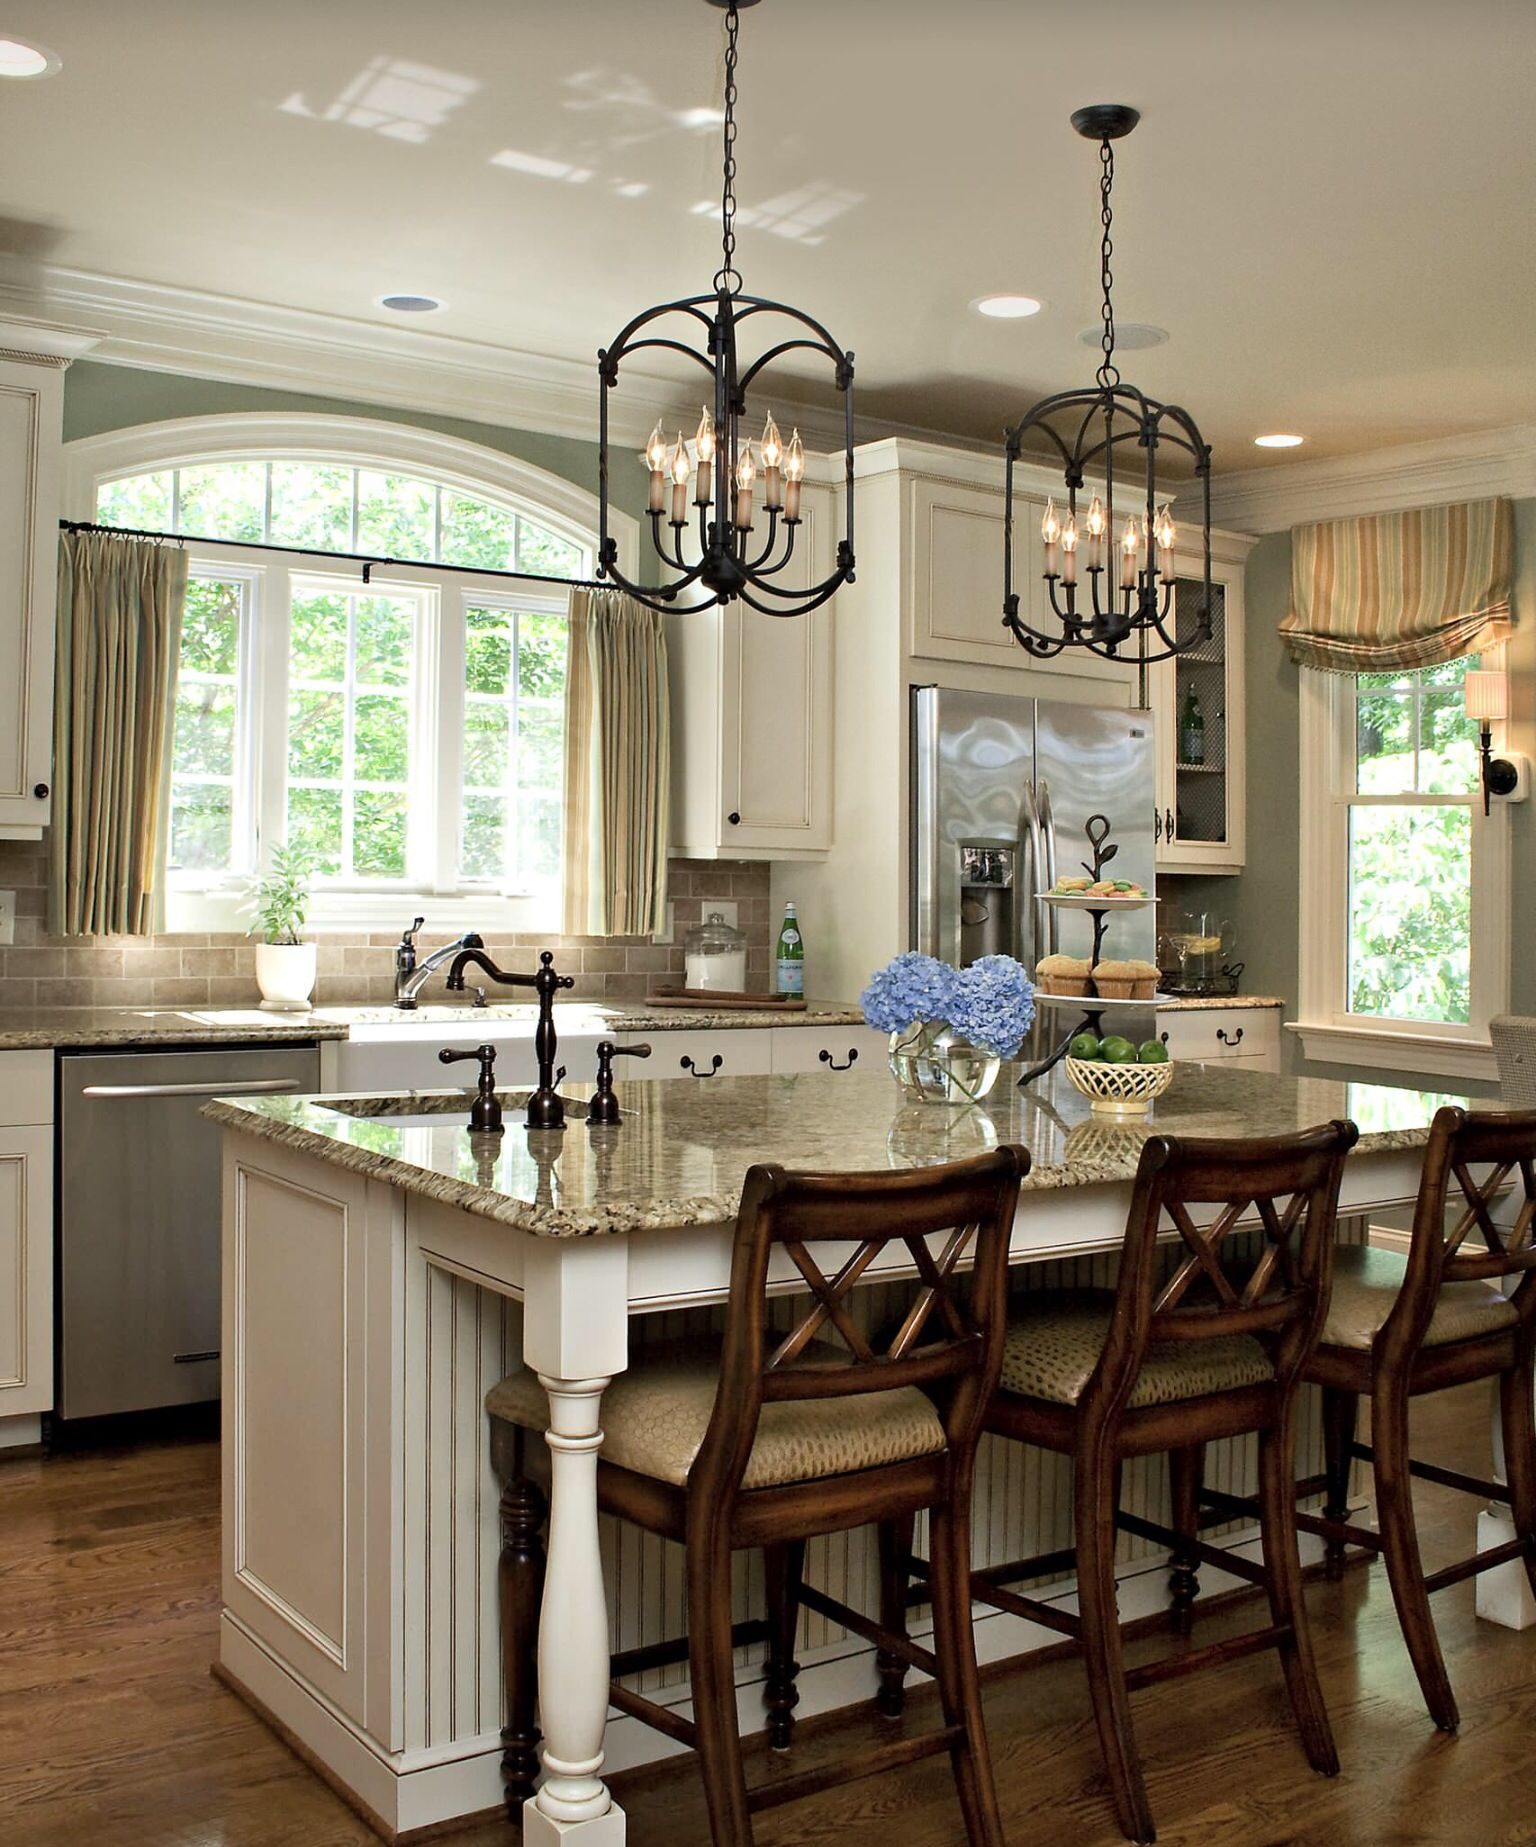 I Love The Chairs Casa Y Jardin De Flores   Pinterest Endearing Kitchen Island Lighting Design Review